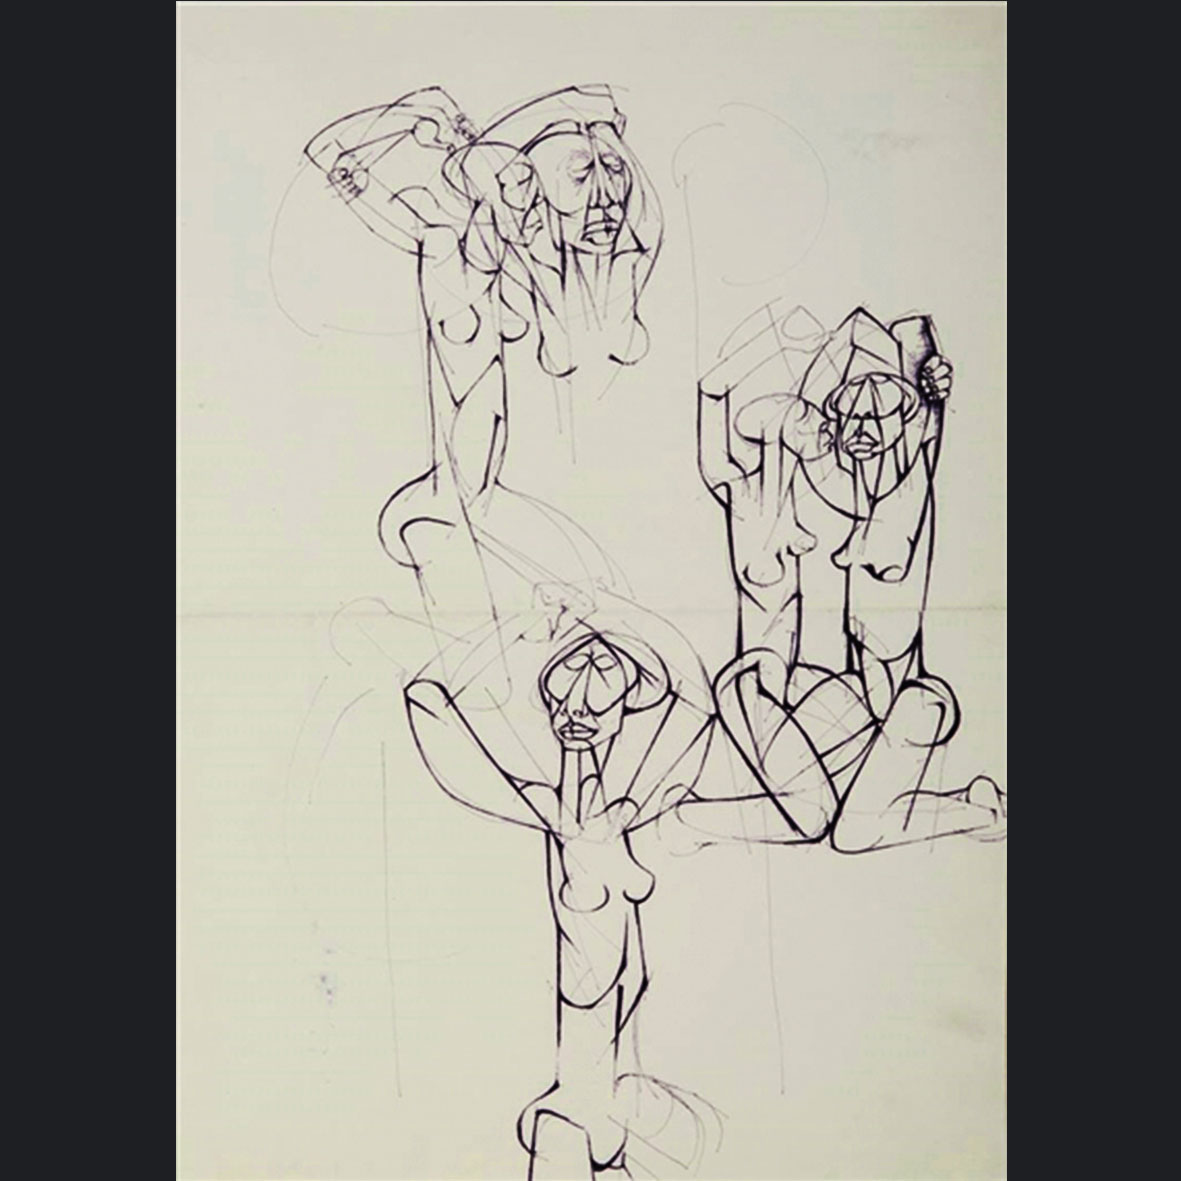 Dumile Feni, (Zwelidumile Mxgazi), SA (1942-1991), Figure studies, pen and ink on paper, 38cm x 54 cm